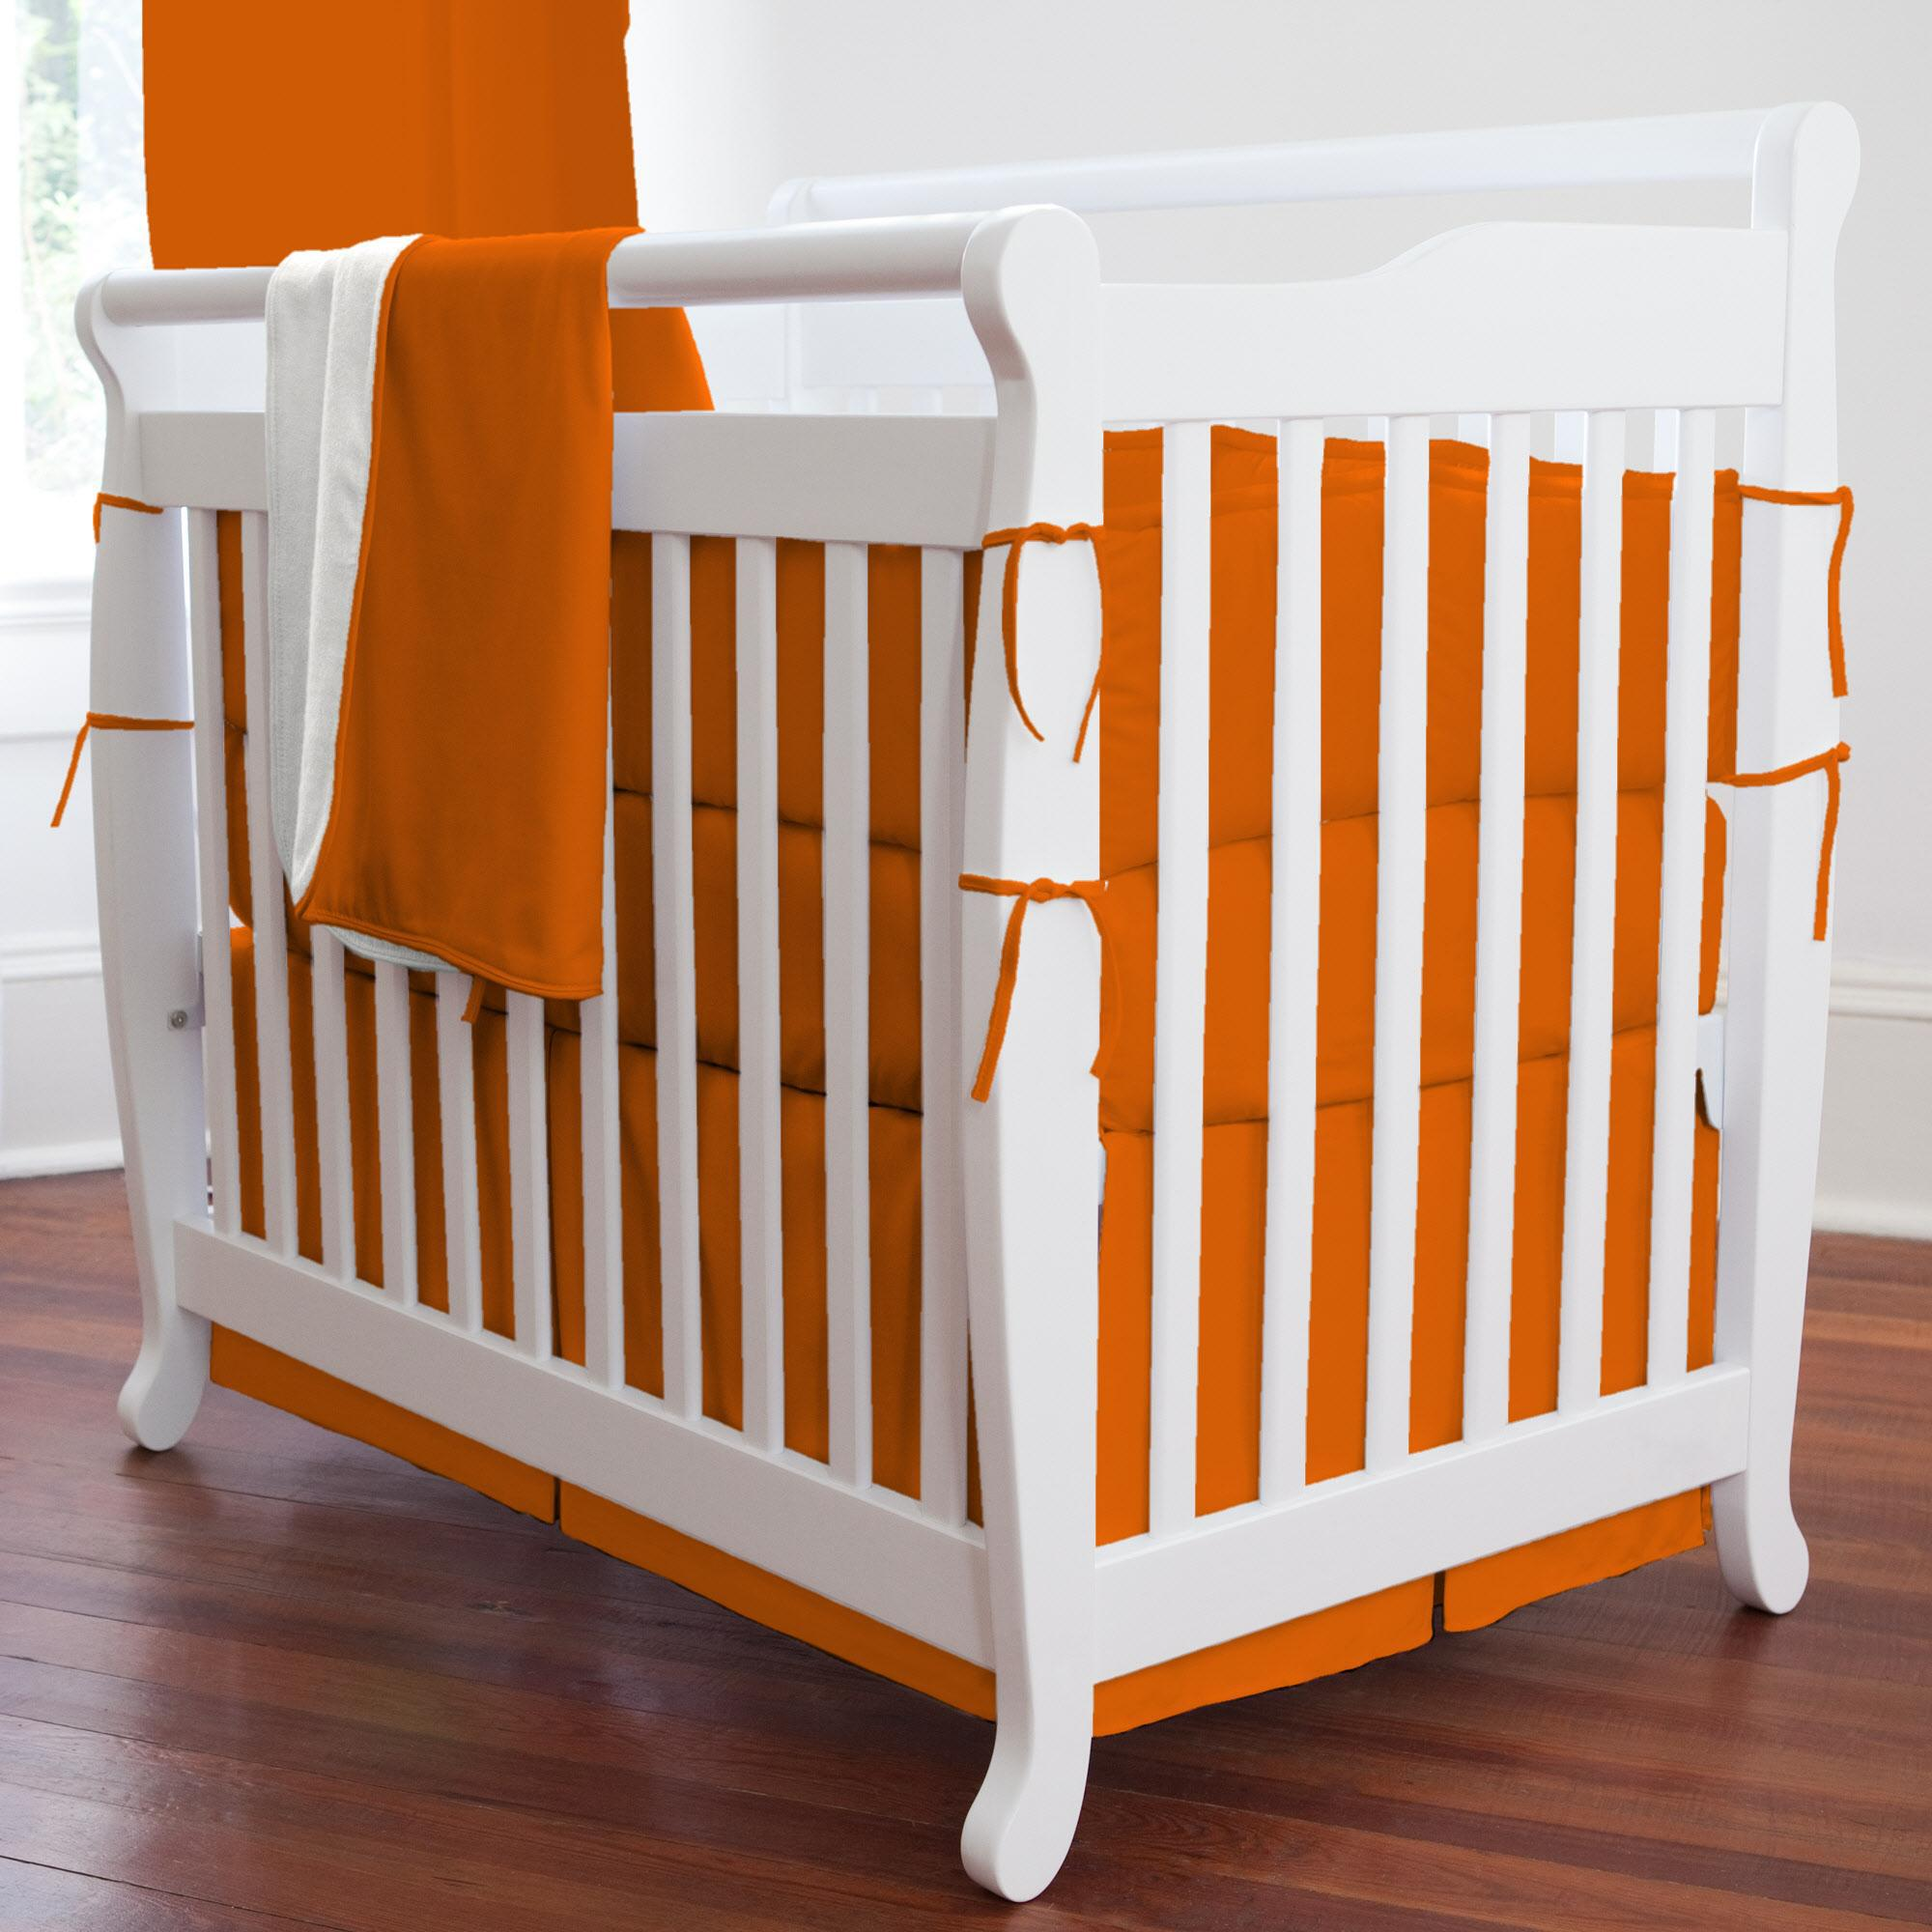 Image of: Where To Buy Solid Color Crib Bedding